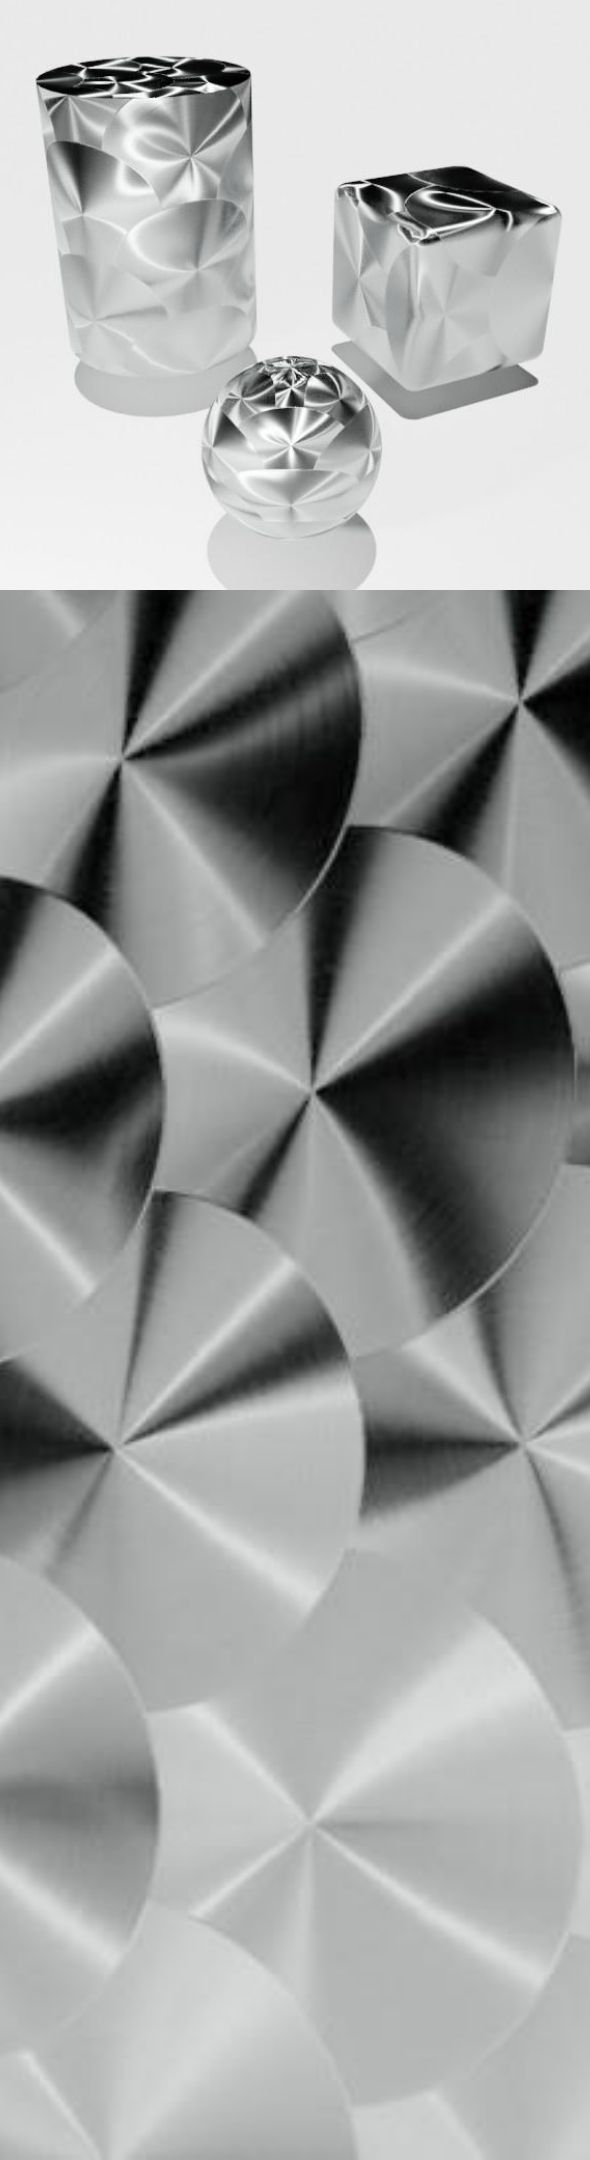 Smooth decorated metal